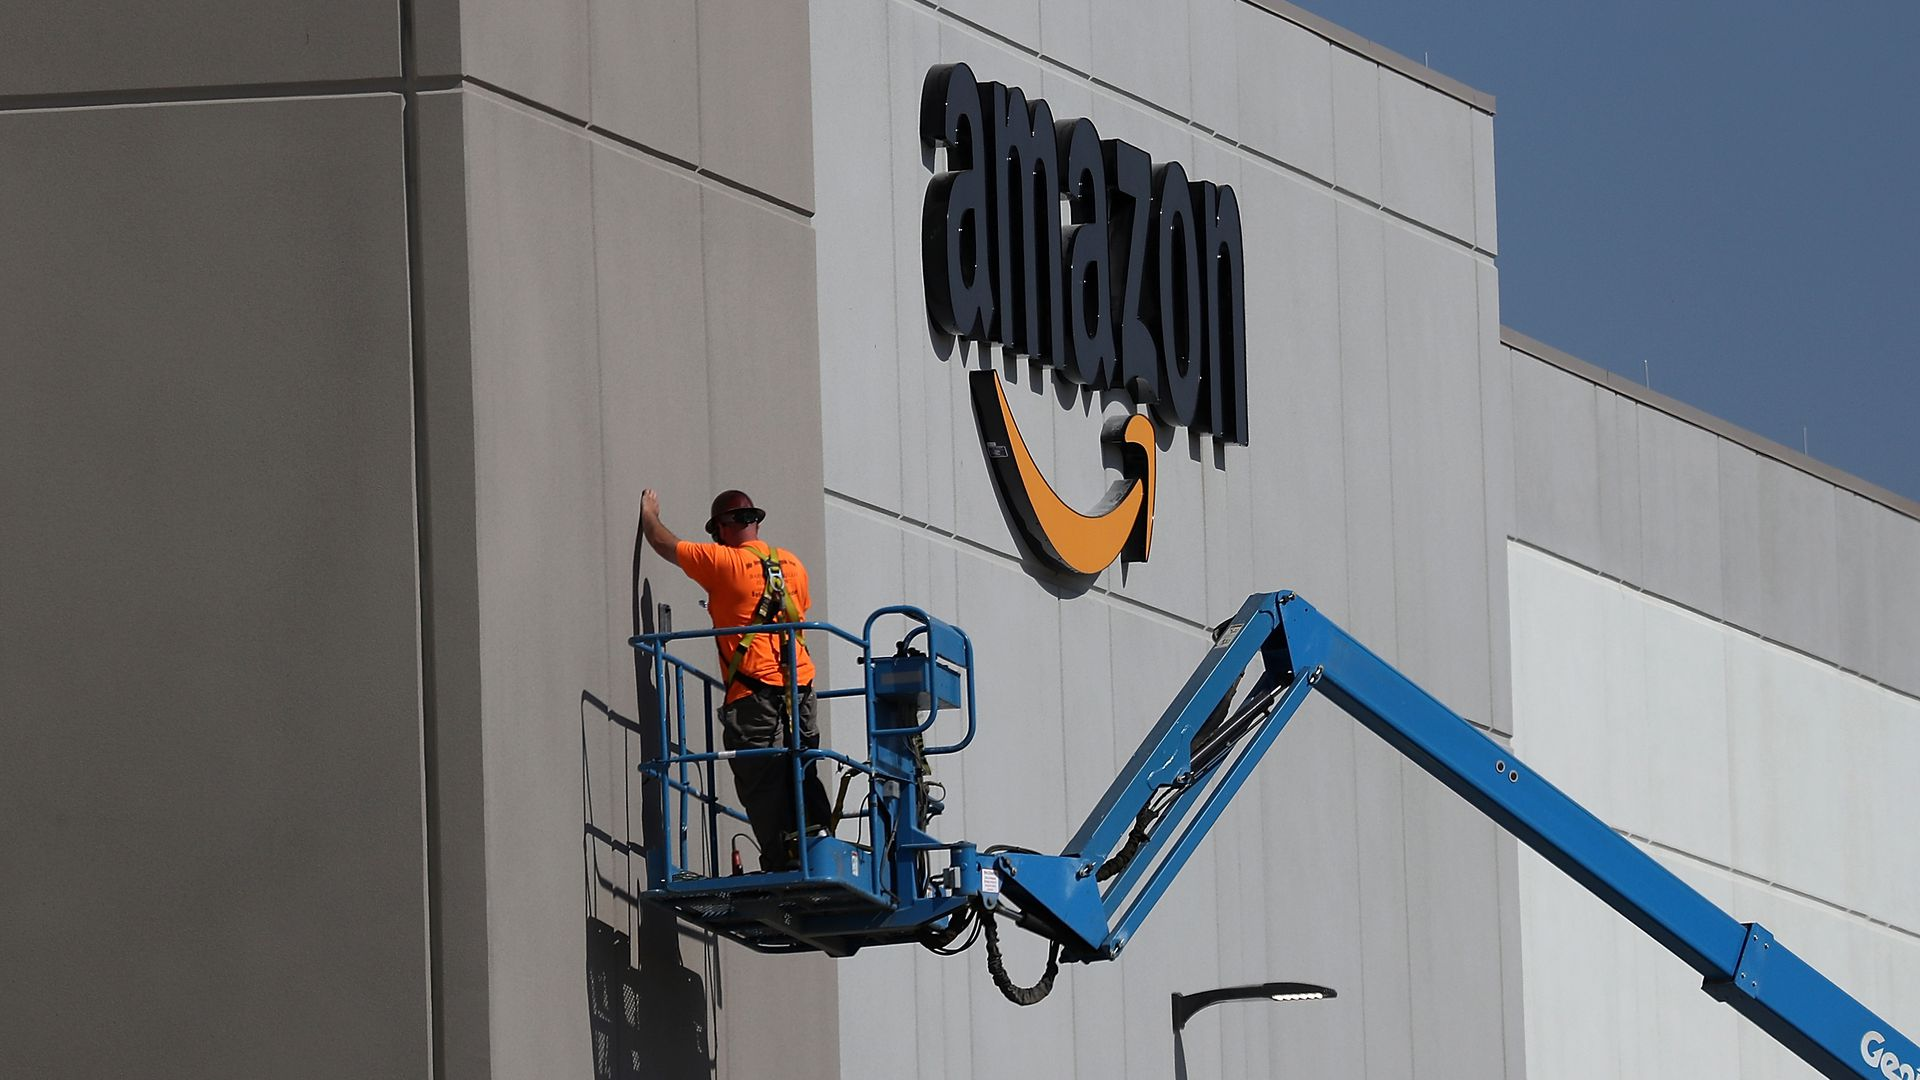 Amazon warehouse with a man on a cherry picker outside.